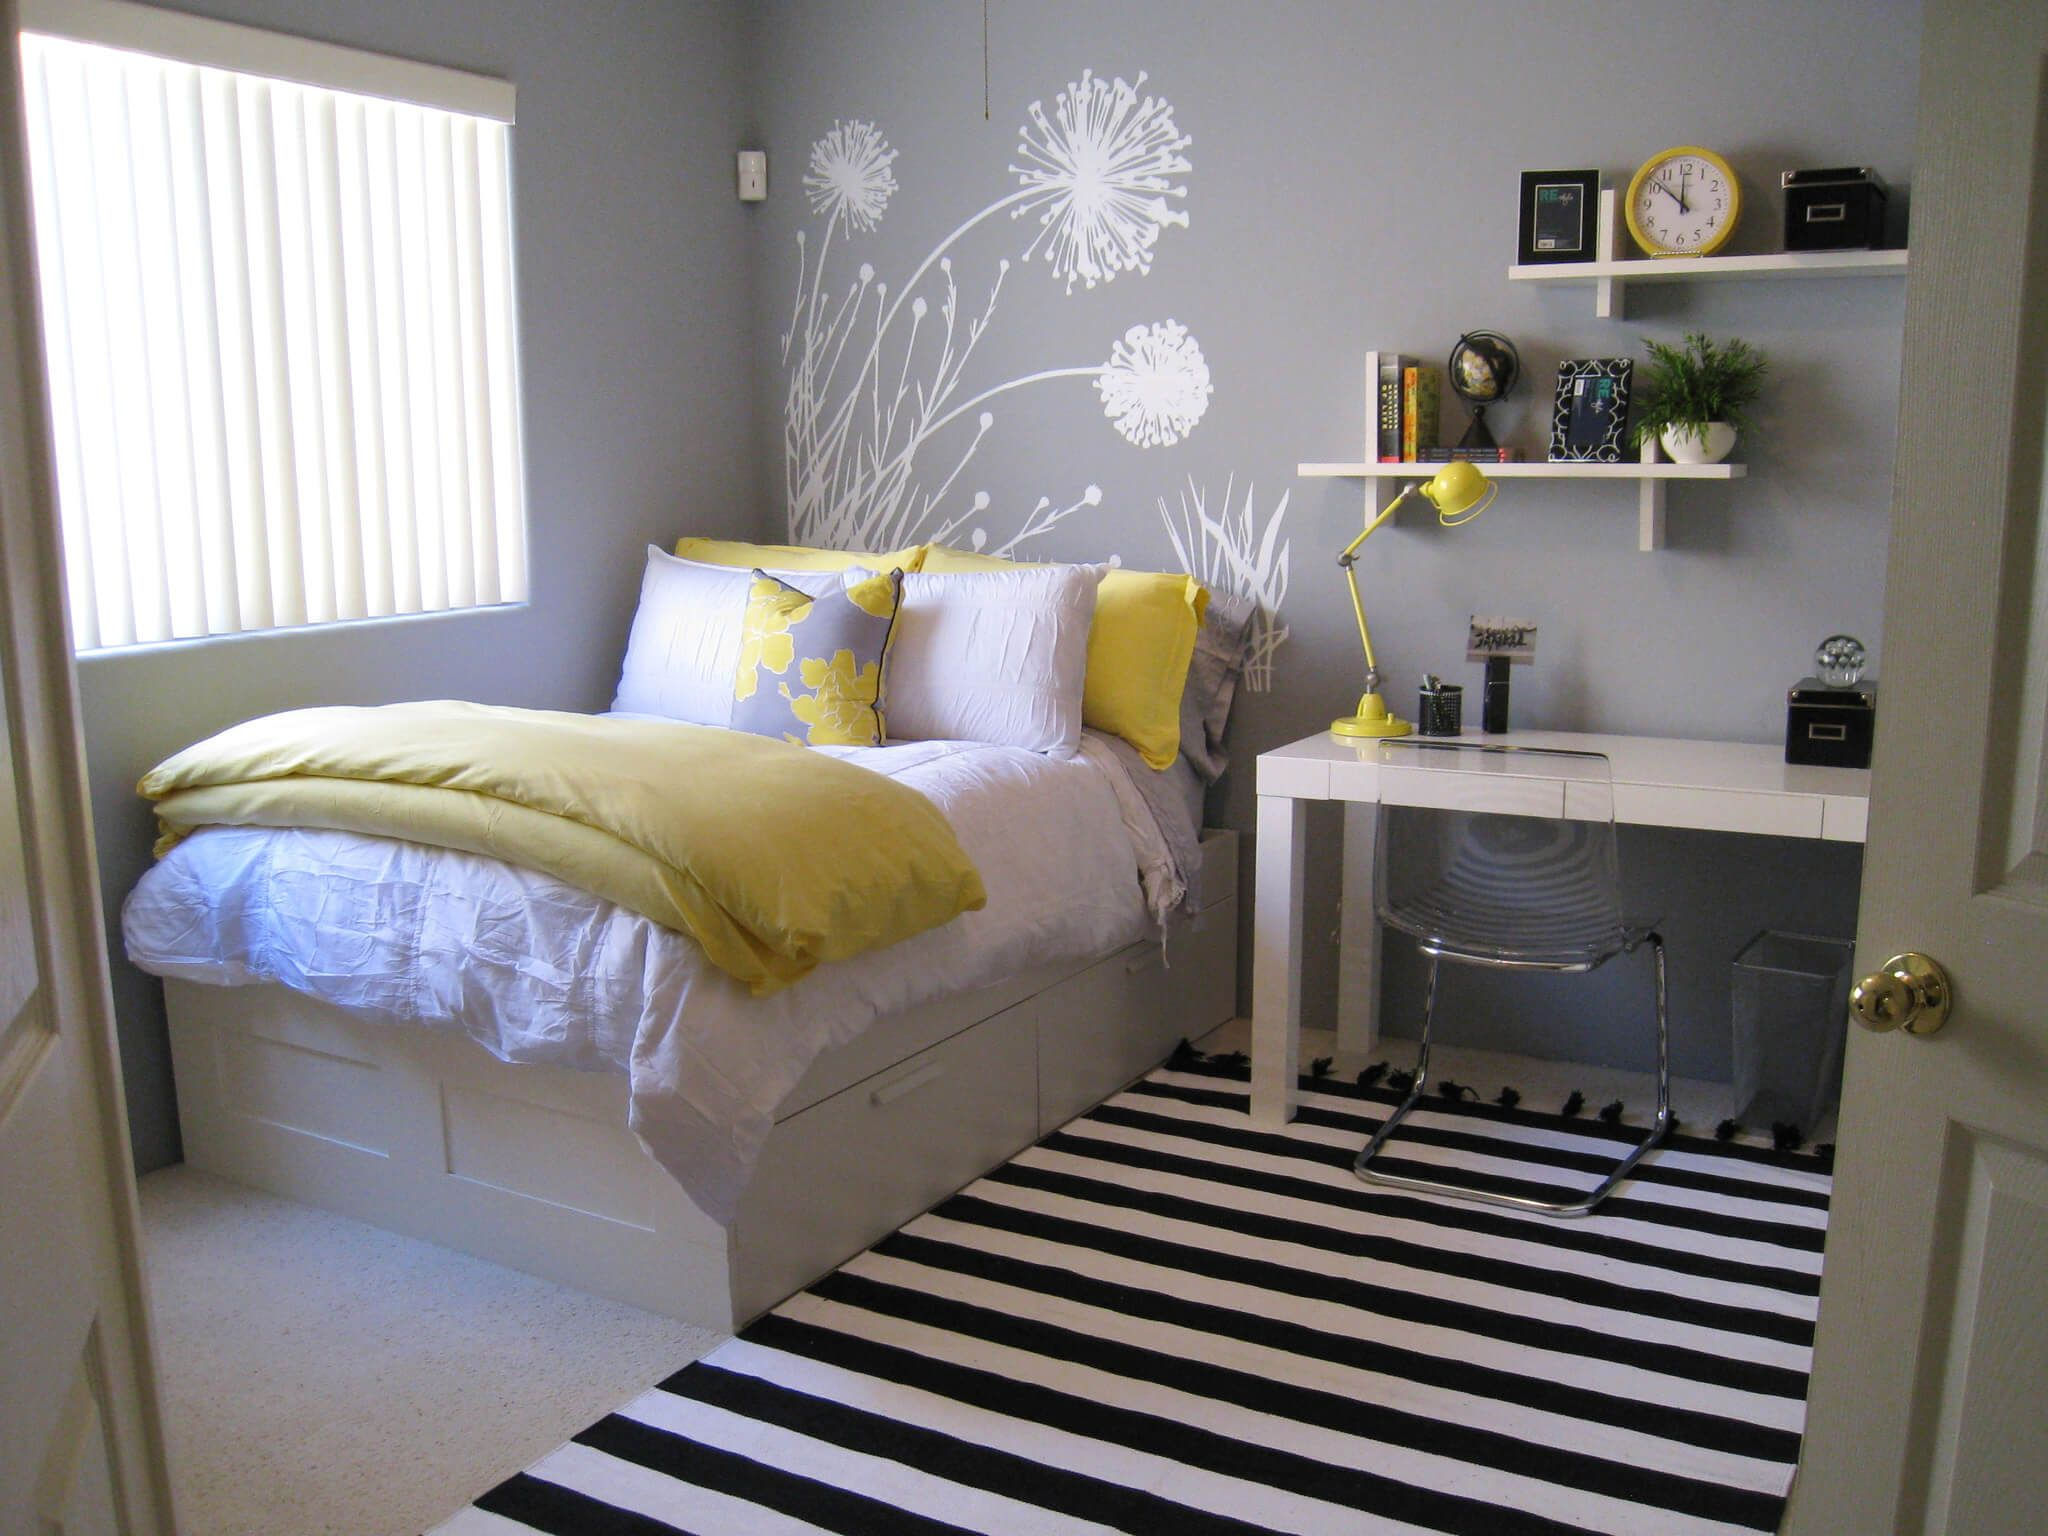 Bedroom color ideas for small rooms - 45 Inspiring Small Bedrooms More Small Bedrooms Decorsmall Roomsguest